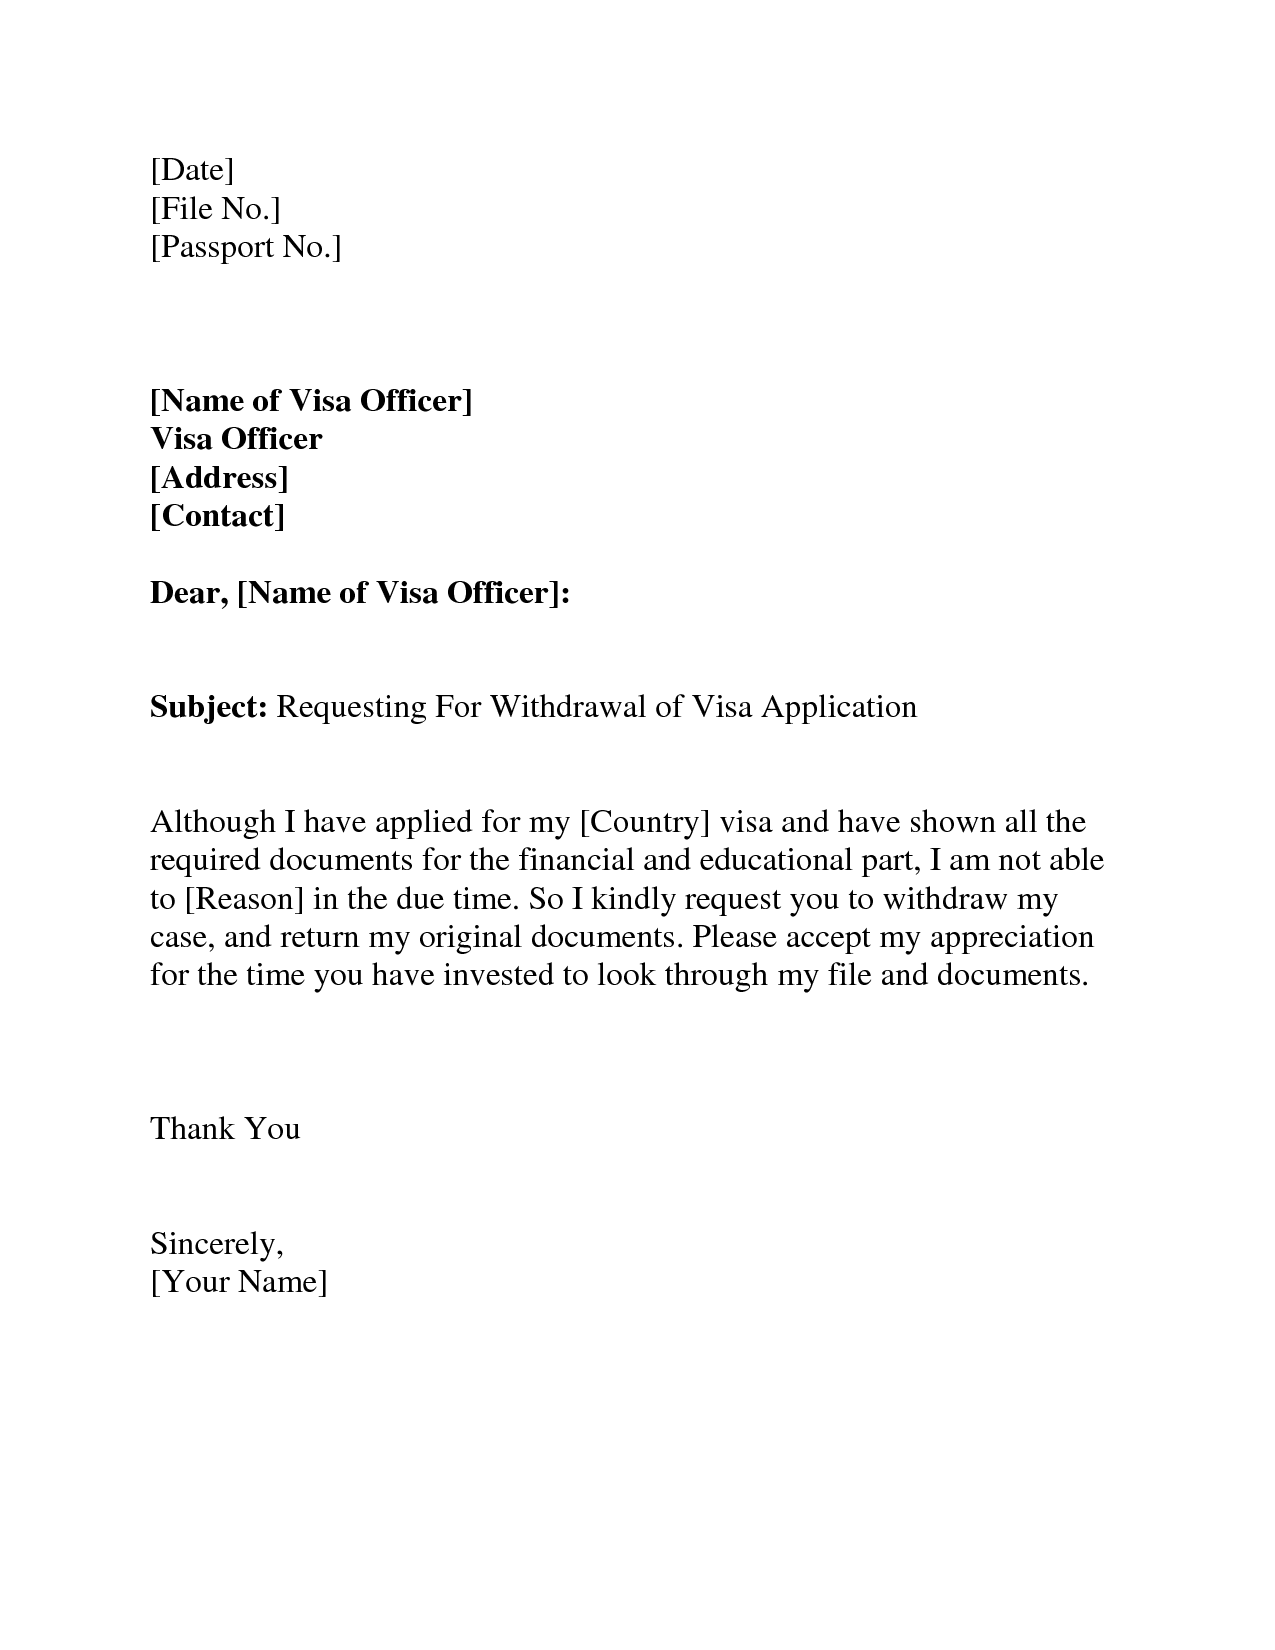 Visa withdrawal letter request letter format letter and emailvisa visa withdrawal letter request letter format letter and emailvisa invitation letter to a friend example application letter sample spiritdancerdesigns